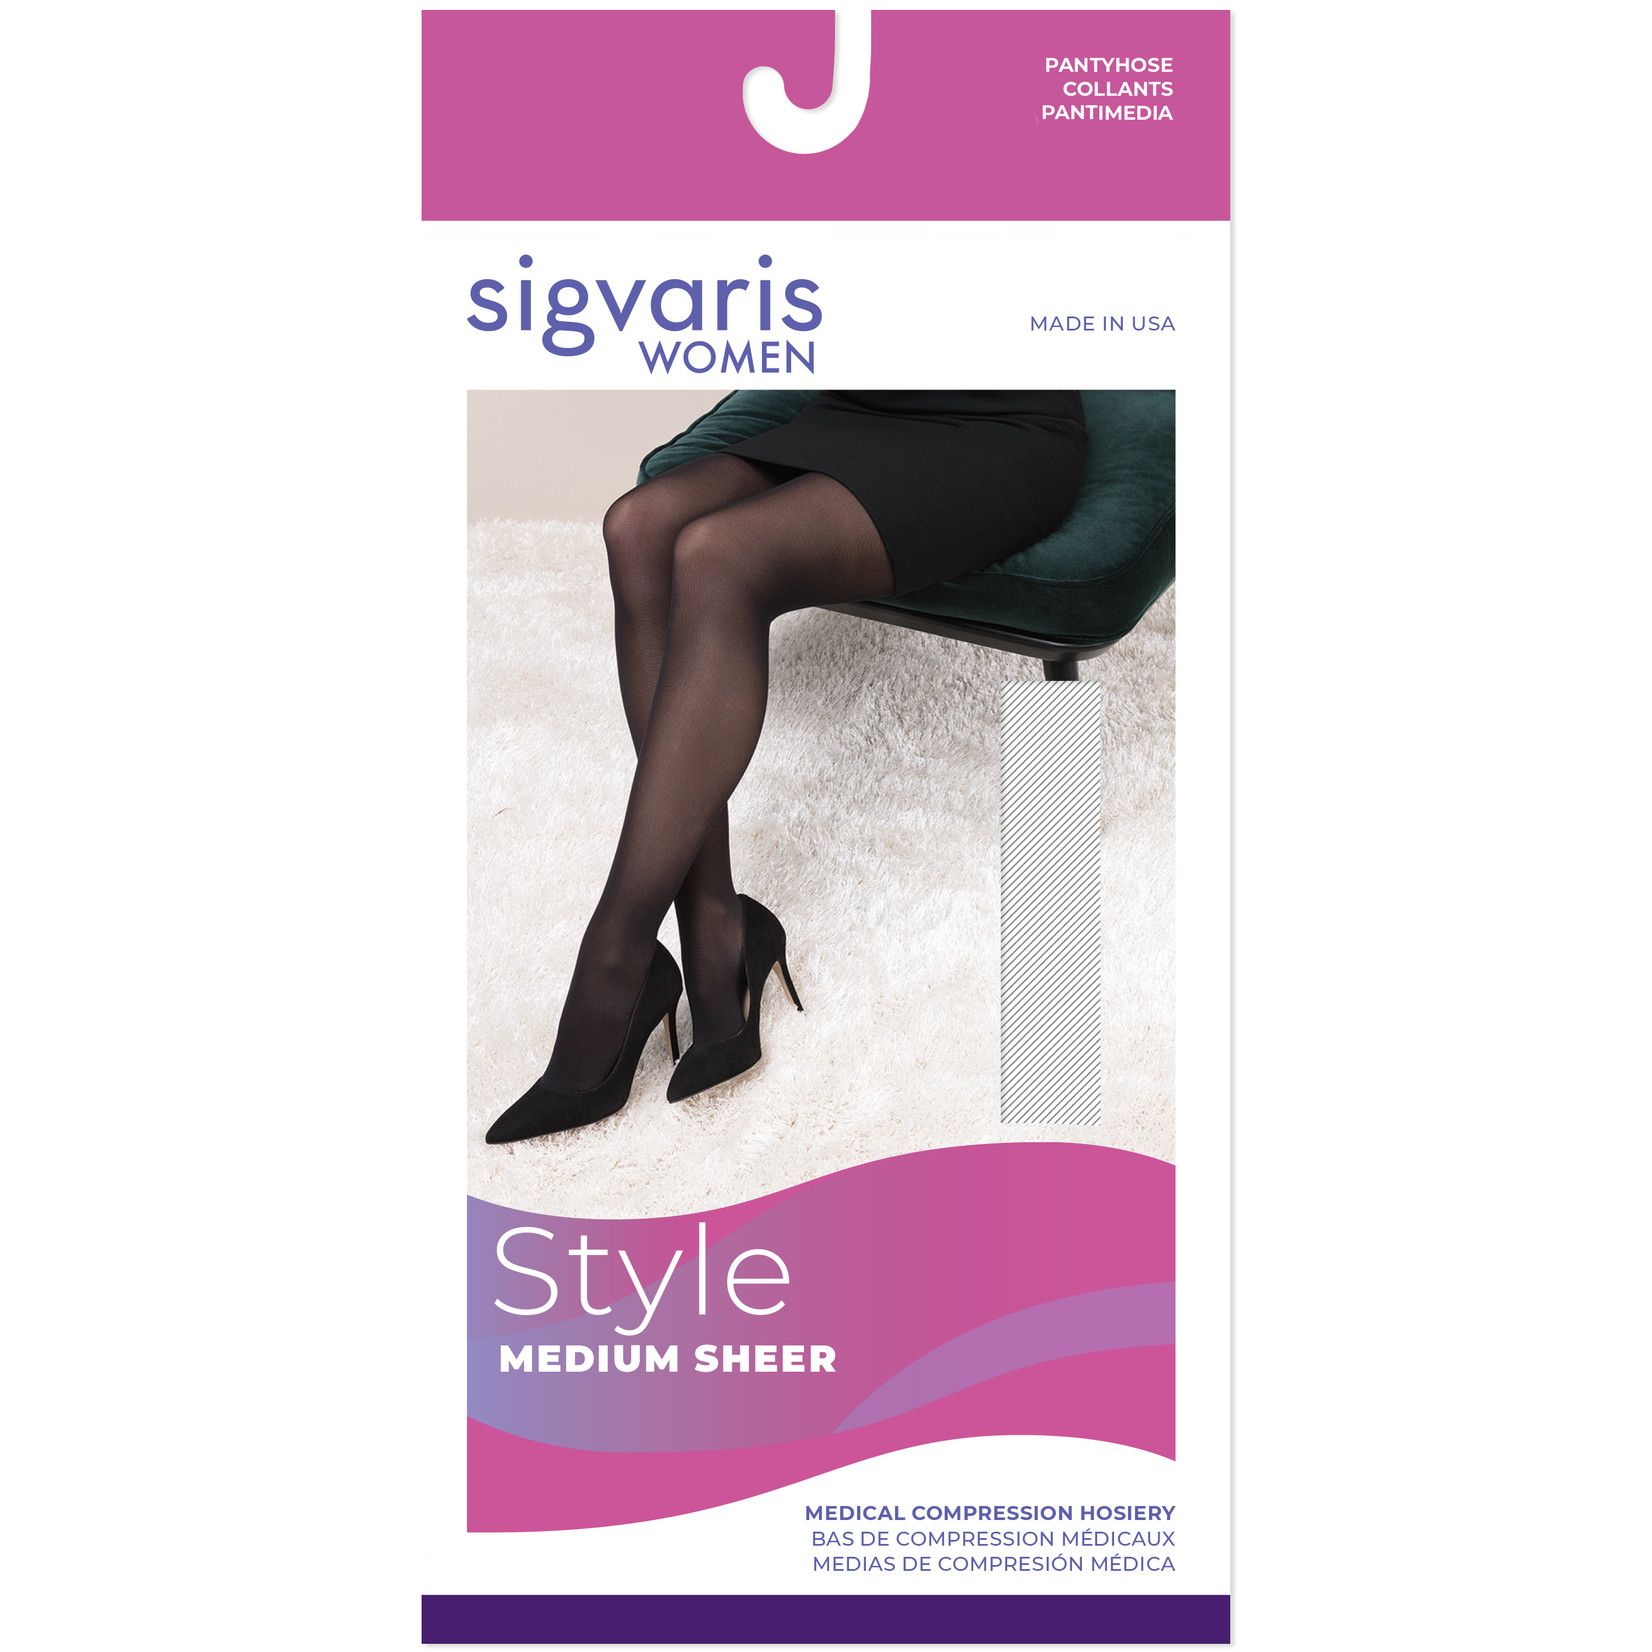 SIGVARIS Women's Style Medium Sheer Pantyhose 20-30mmHg